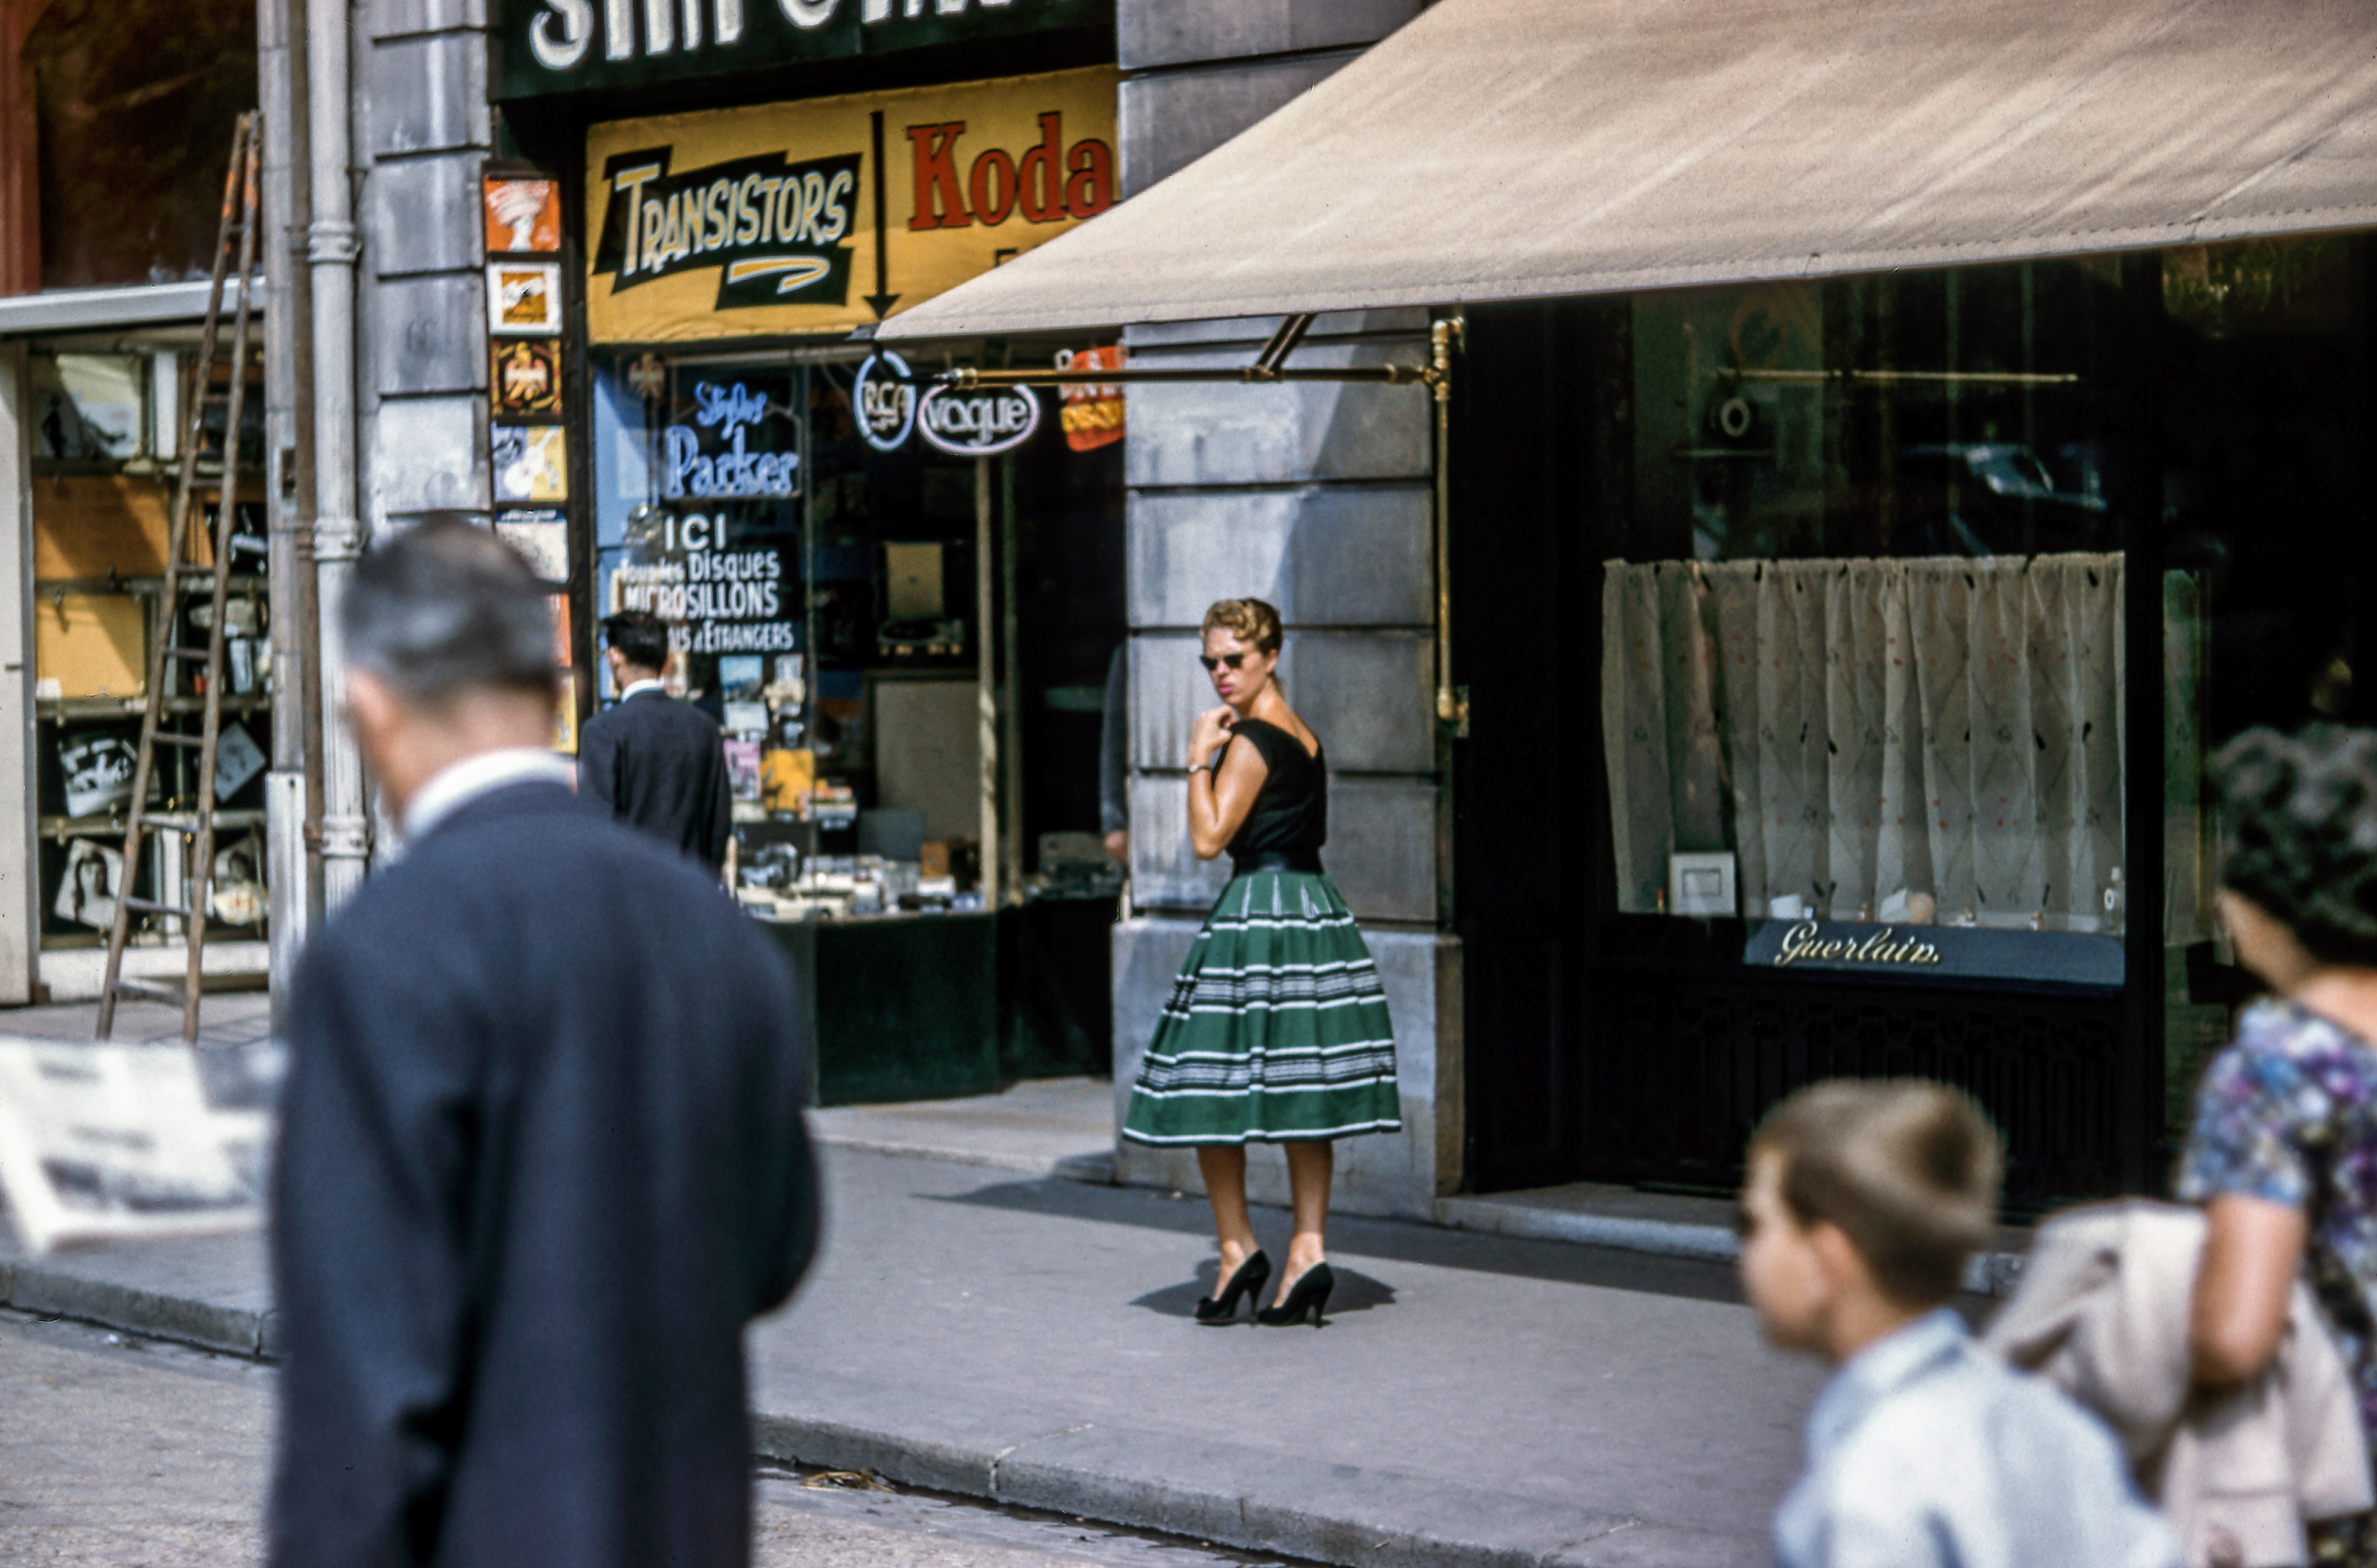 A woman in a green skirt in a French street looking back